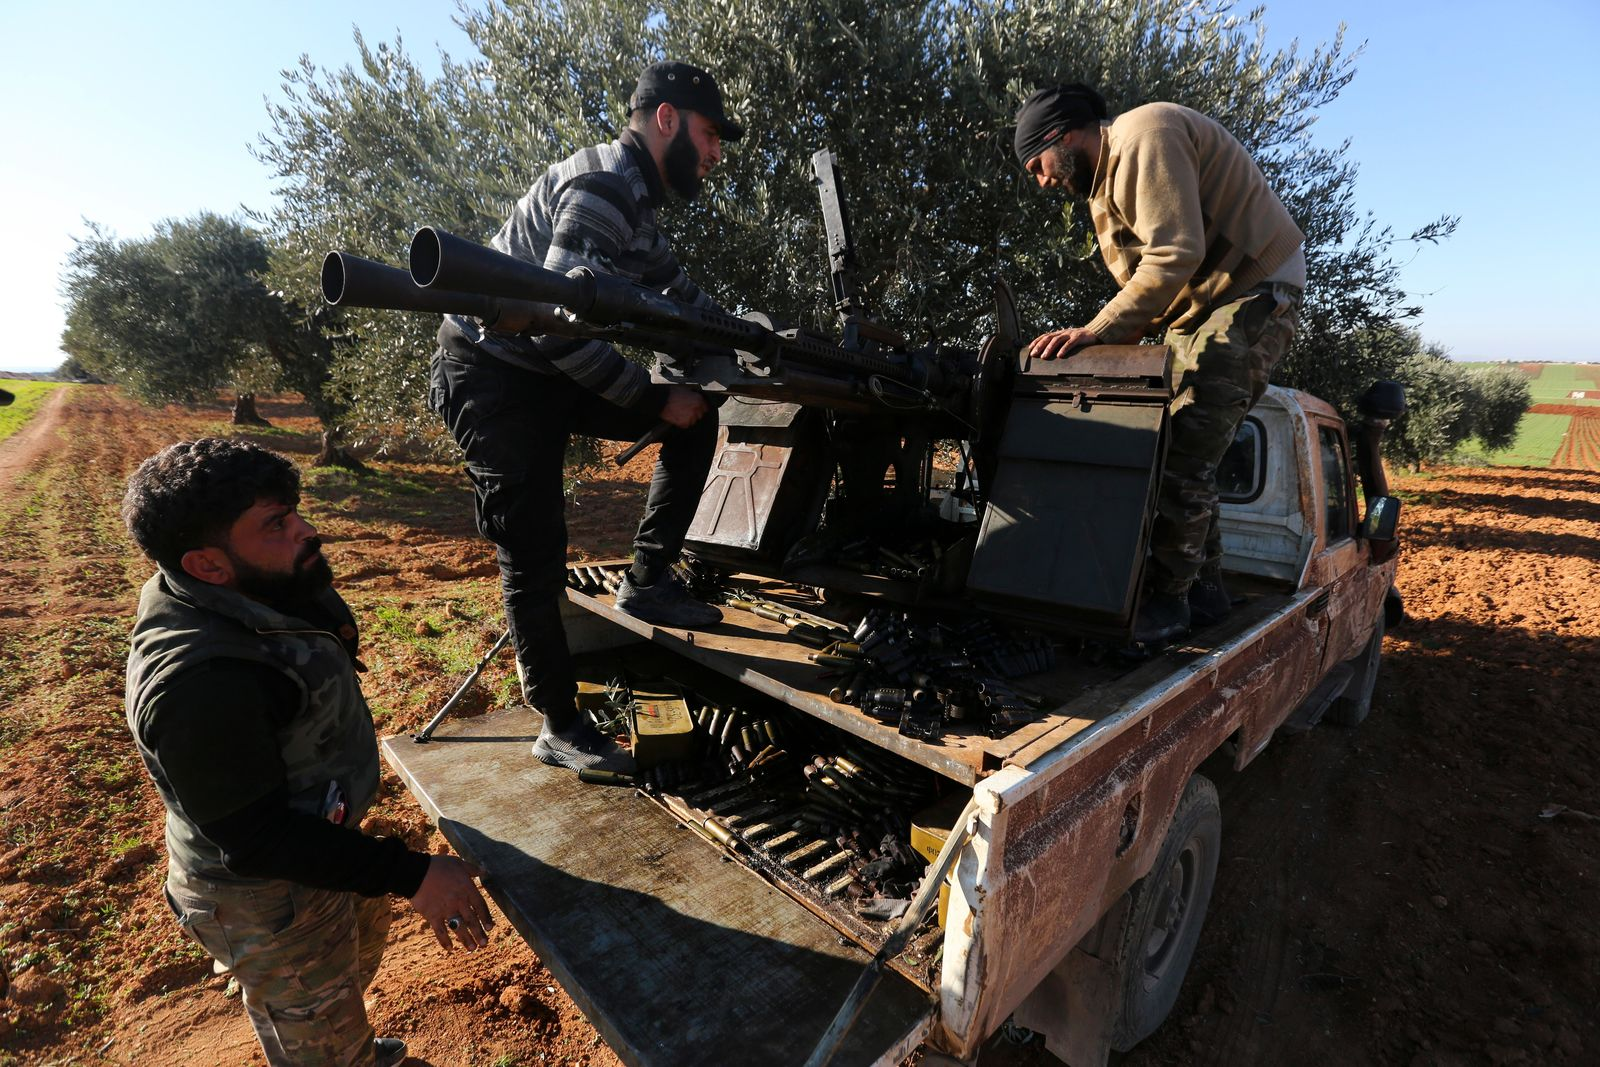 Turkish backed Syrian fighters load ammunition at a frontline near the town of Saraqib in Idlib province, Syria, Wednesday, Feb. 26, 2020. (AP Photo/Ghaith Alsayed)